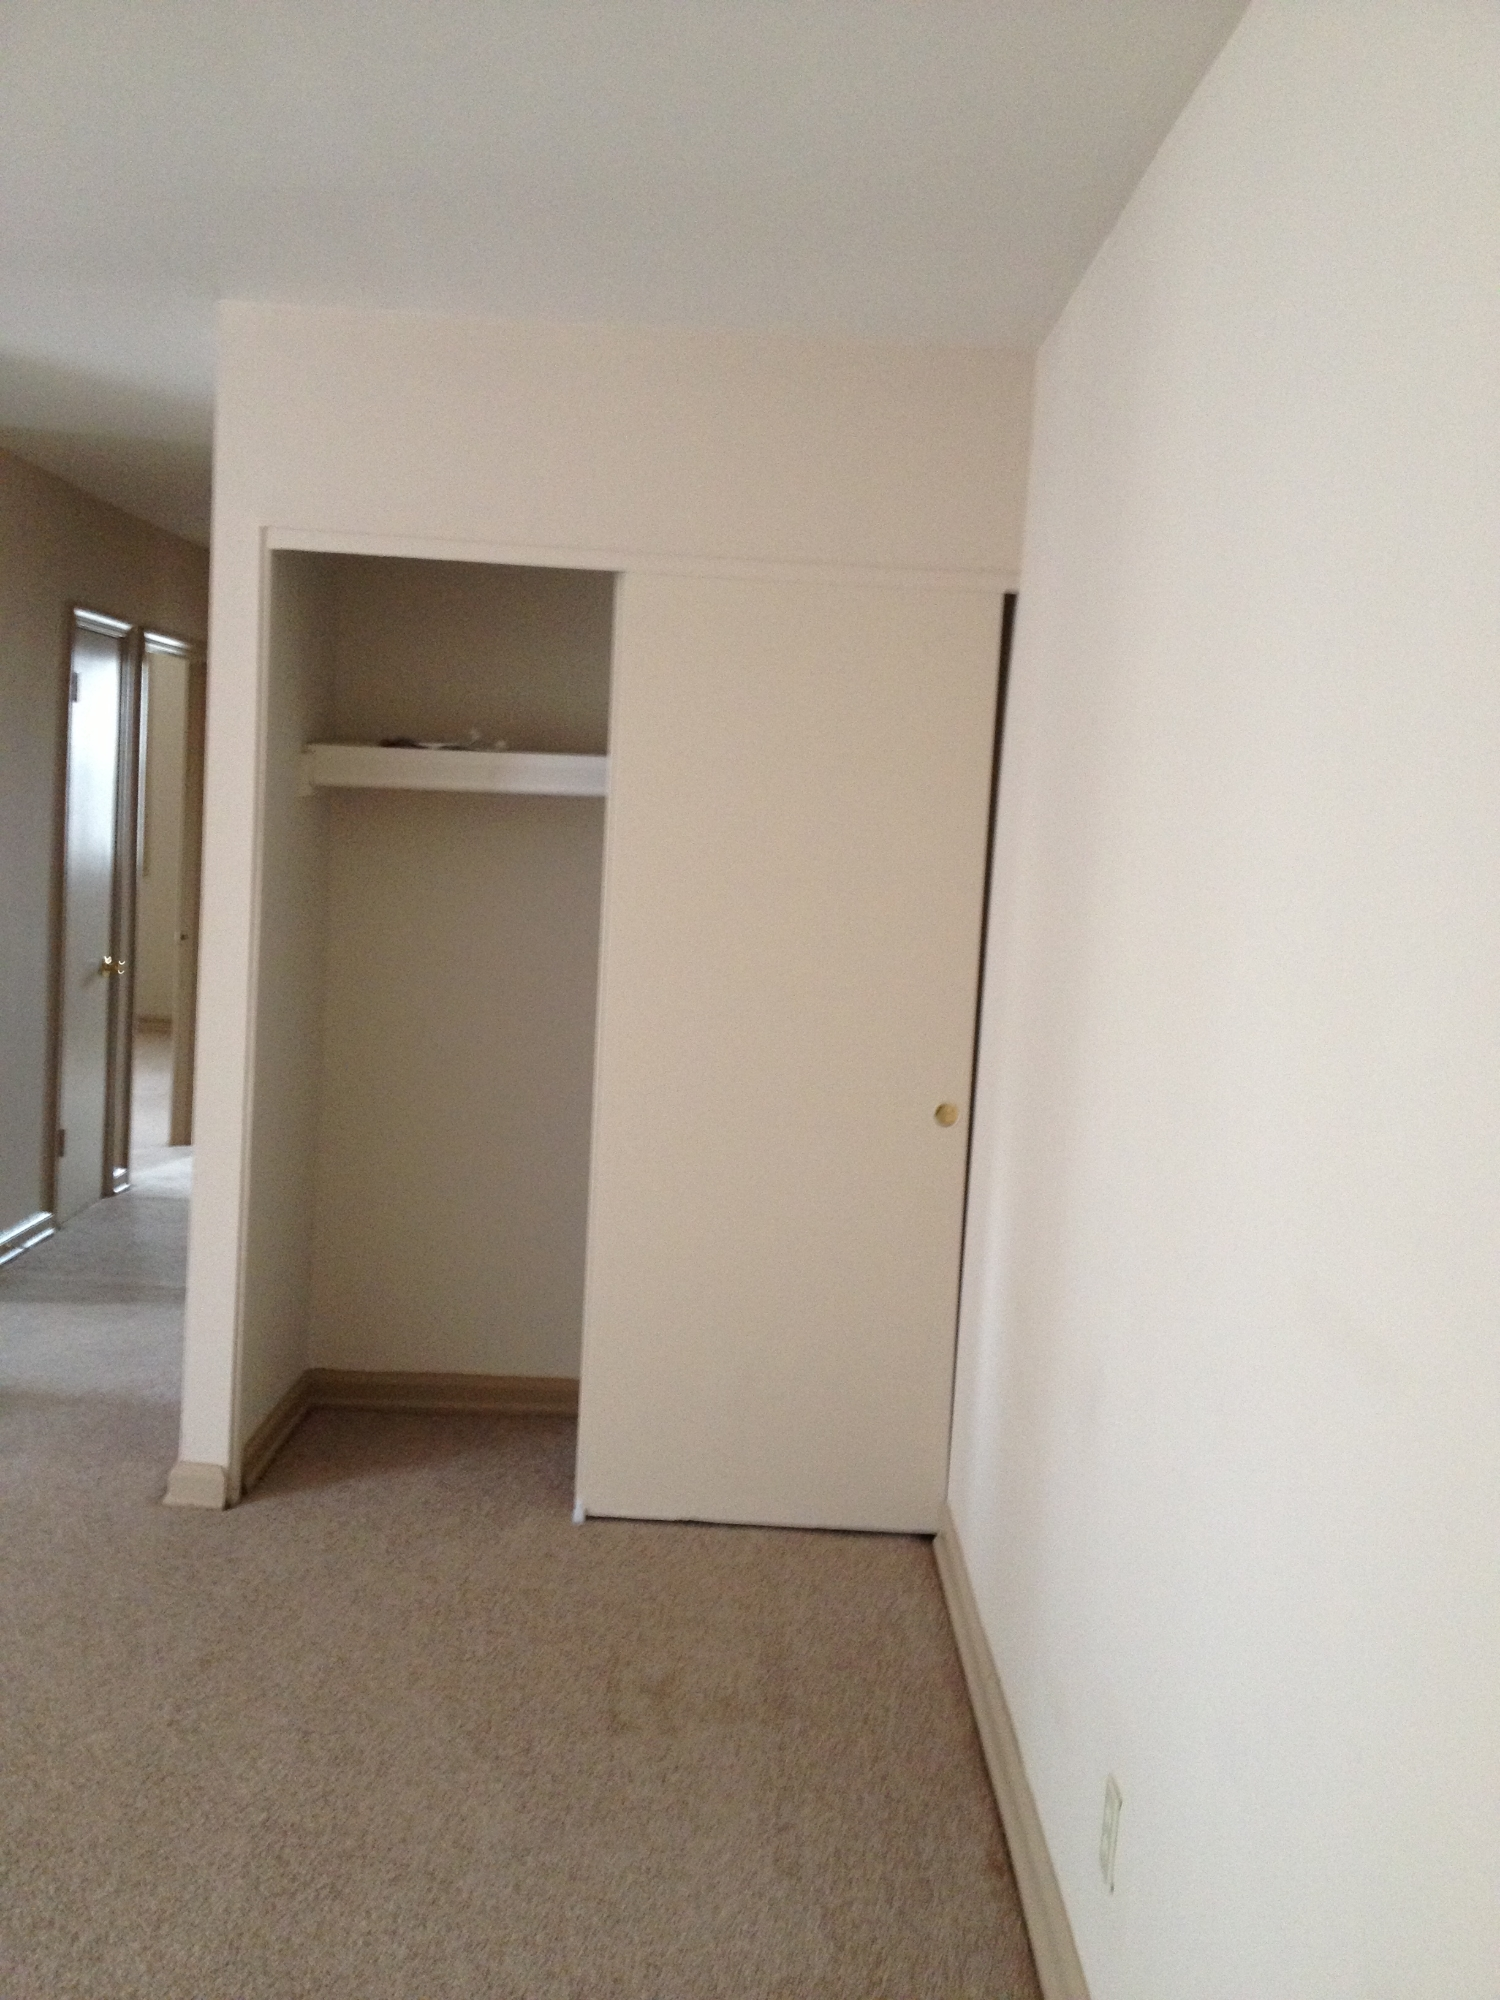 This large coat closet offers a generous amount of storage space.